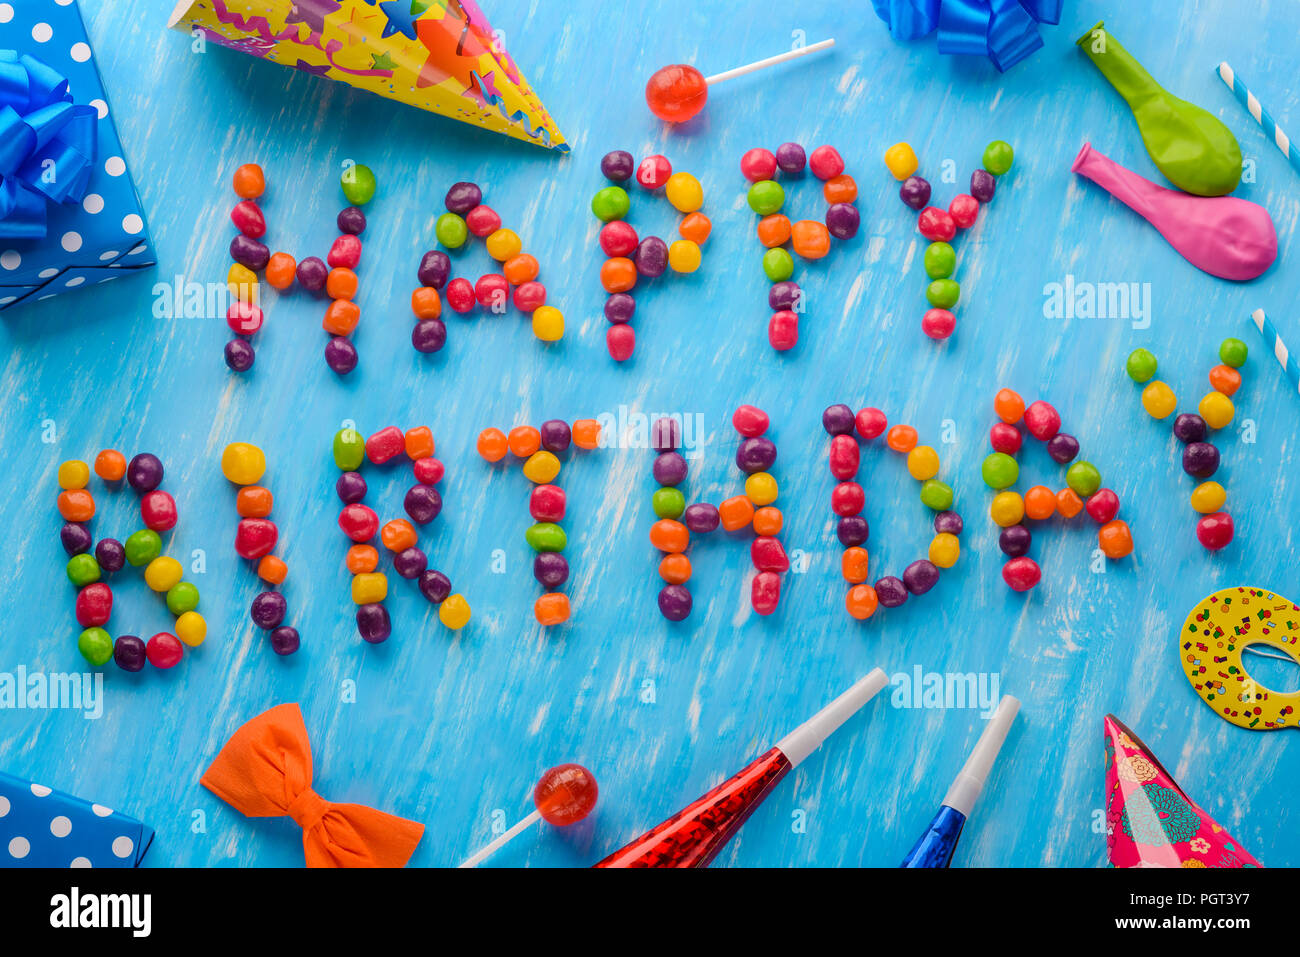 Happy Birthday High Resolution Stock Photography And Images Alamy